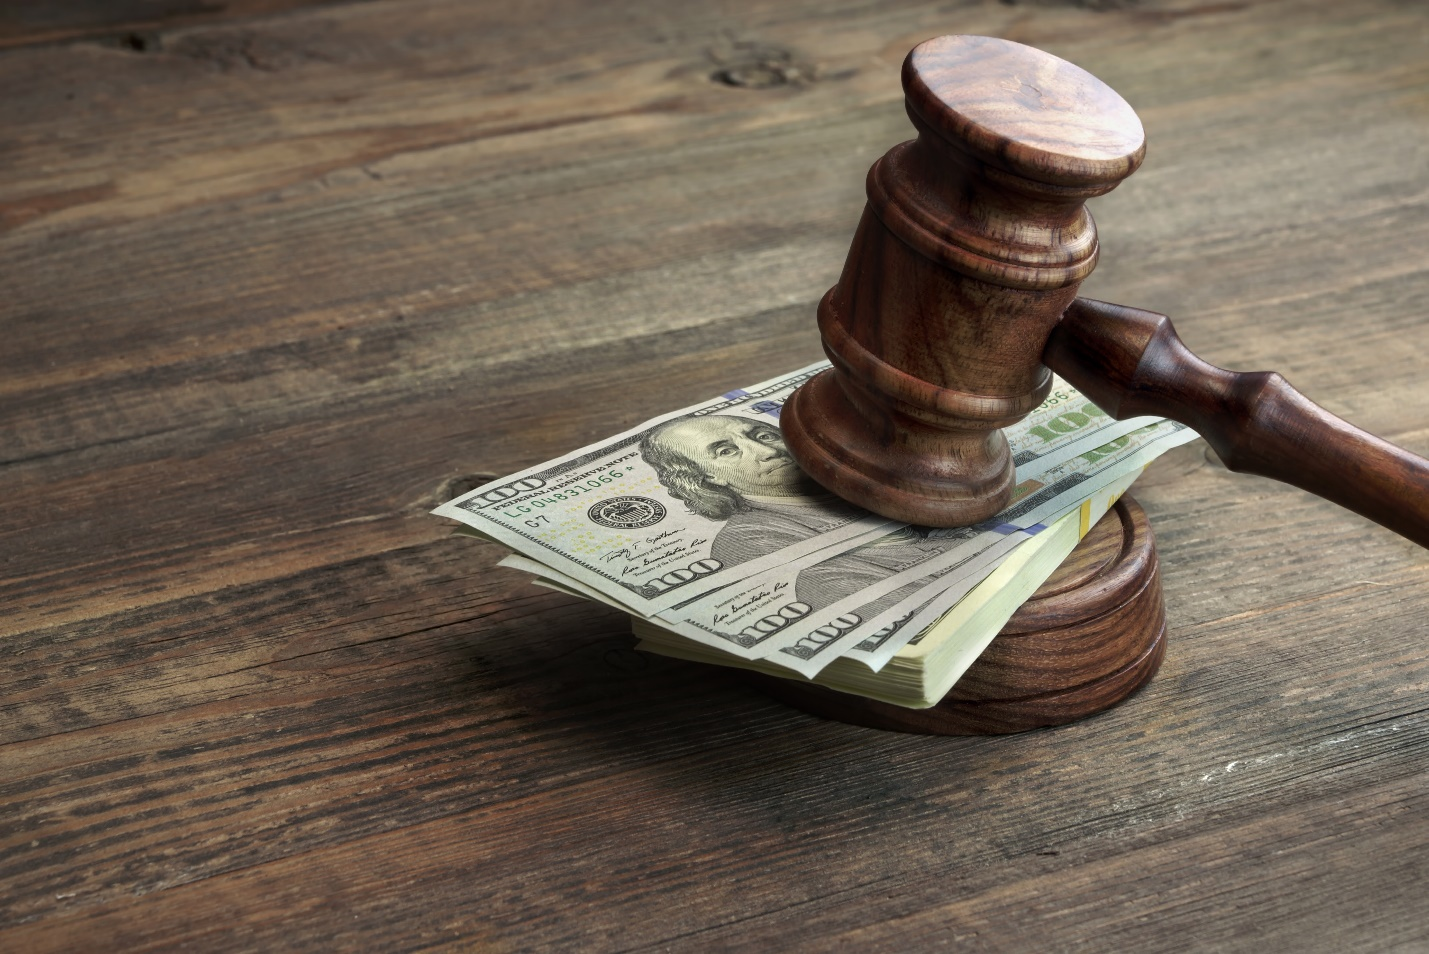 wage garnishment while on disability in ar - Can Social Security Be Garnished For Medical Bills In Arkansas